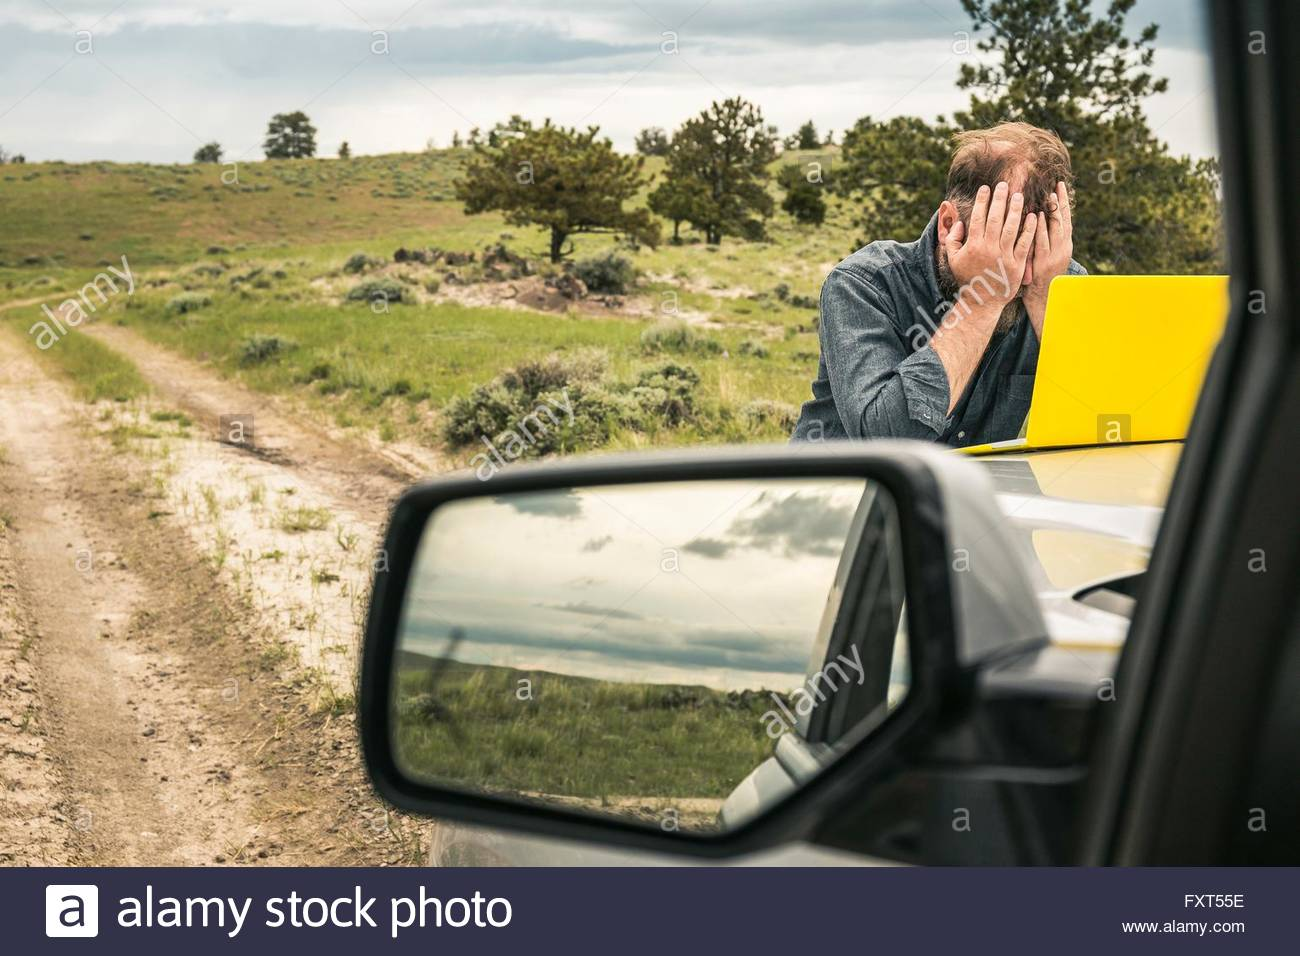 Man on dirt track road trip with head in hands at car bonnet, Cody, Wyoming, USA - Stock Image